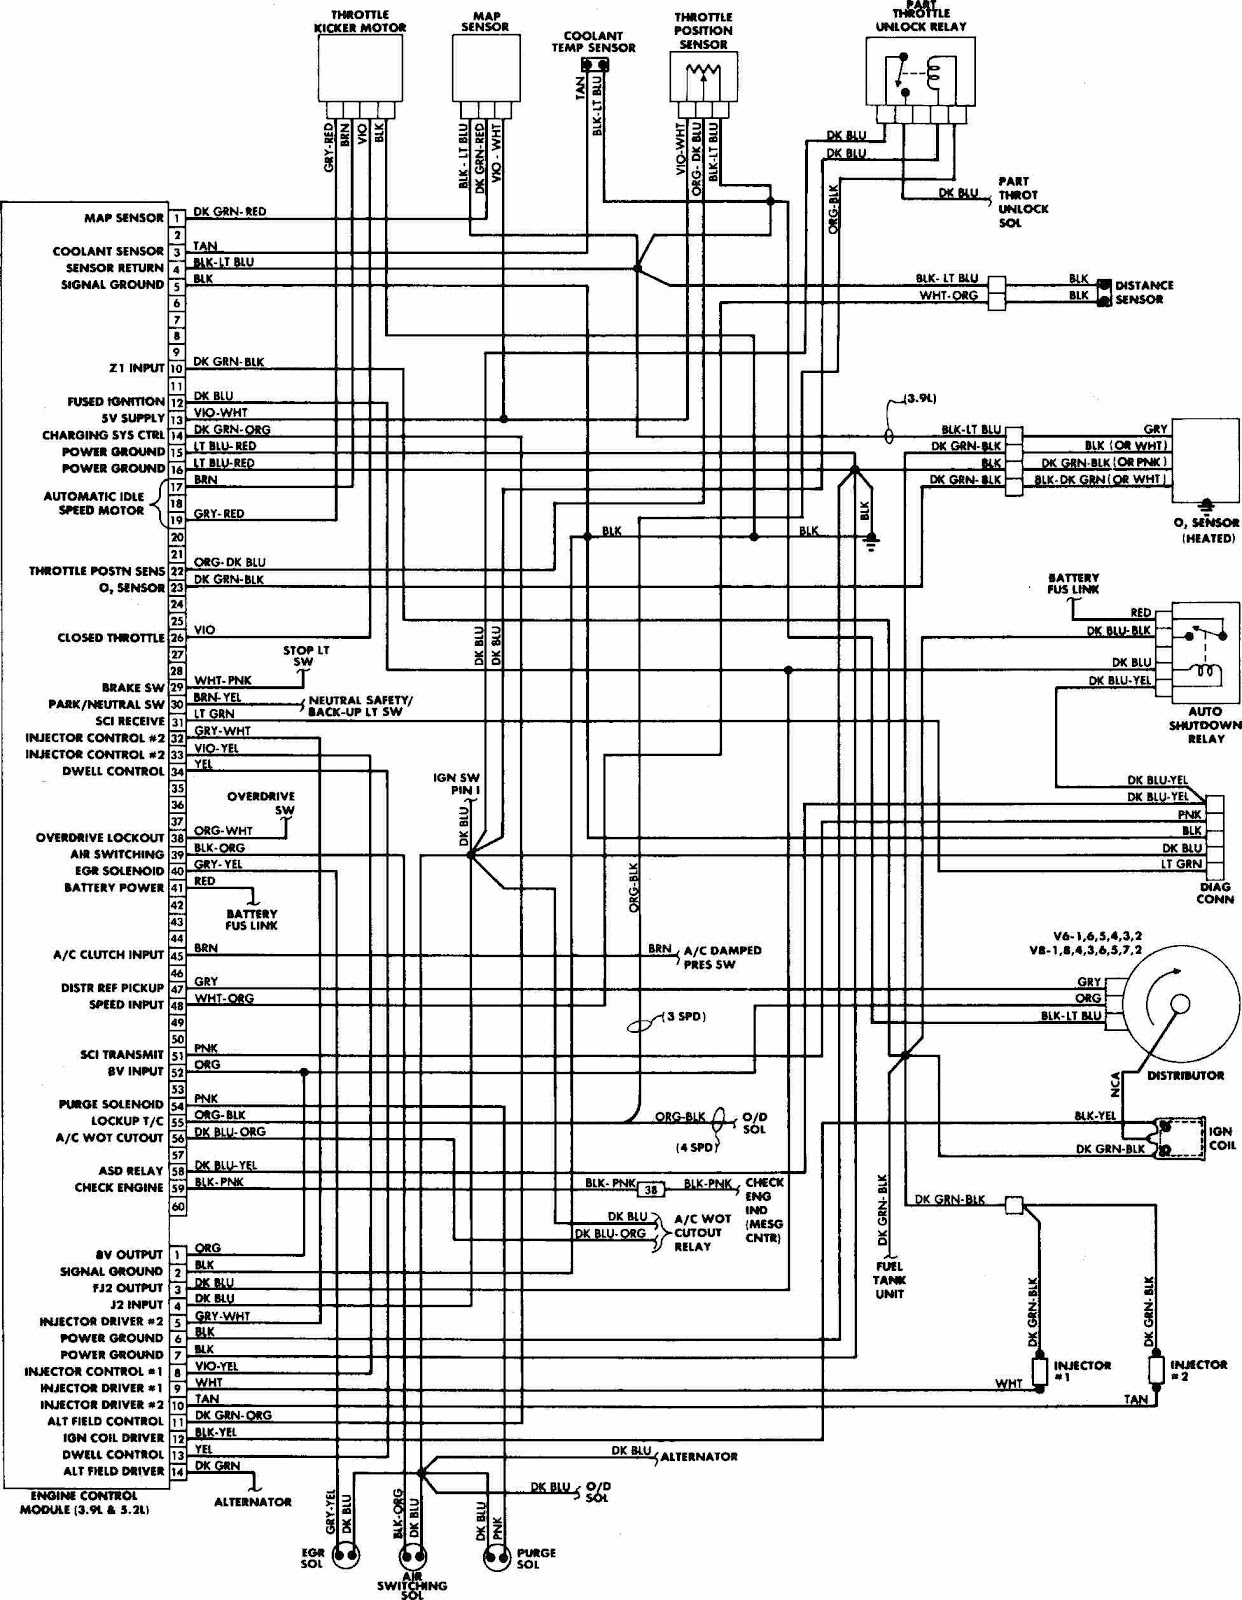 1973 dodge truck 318 engine schematic  1973  free engine